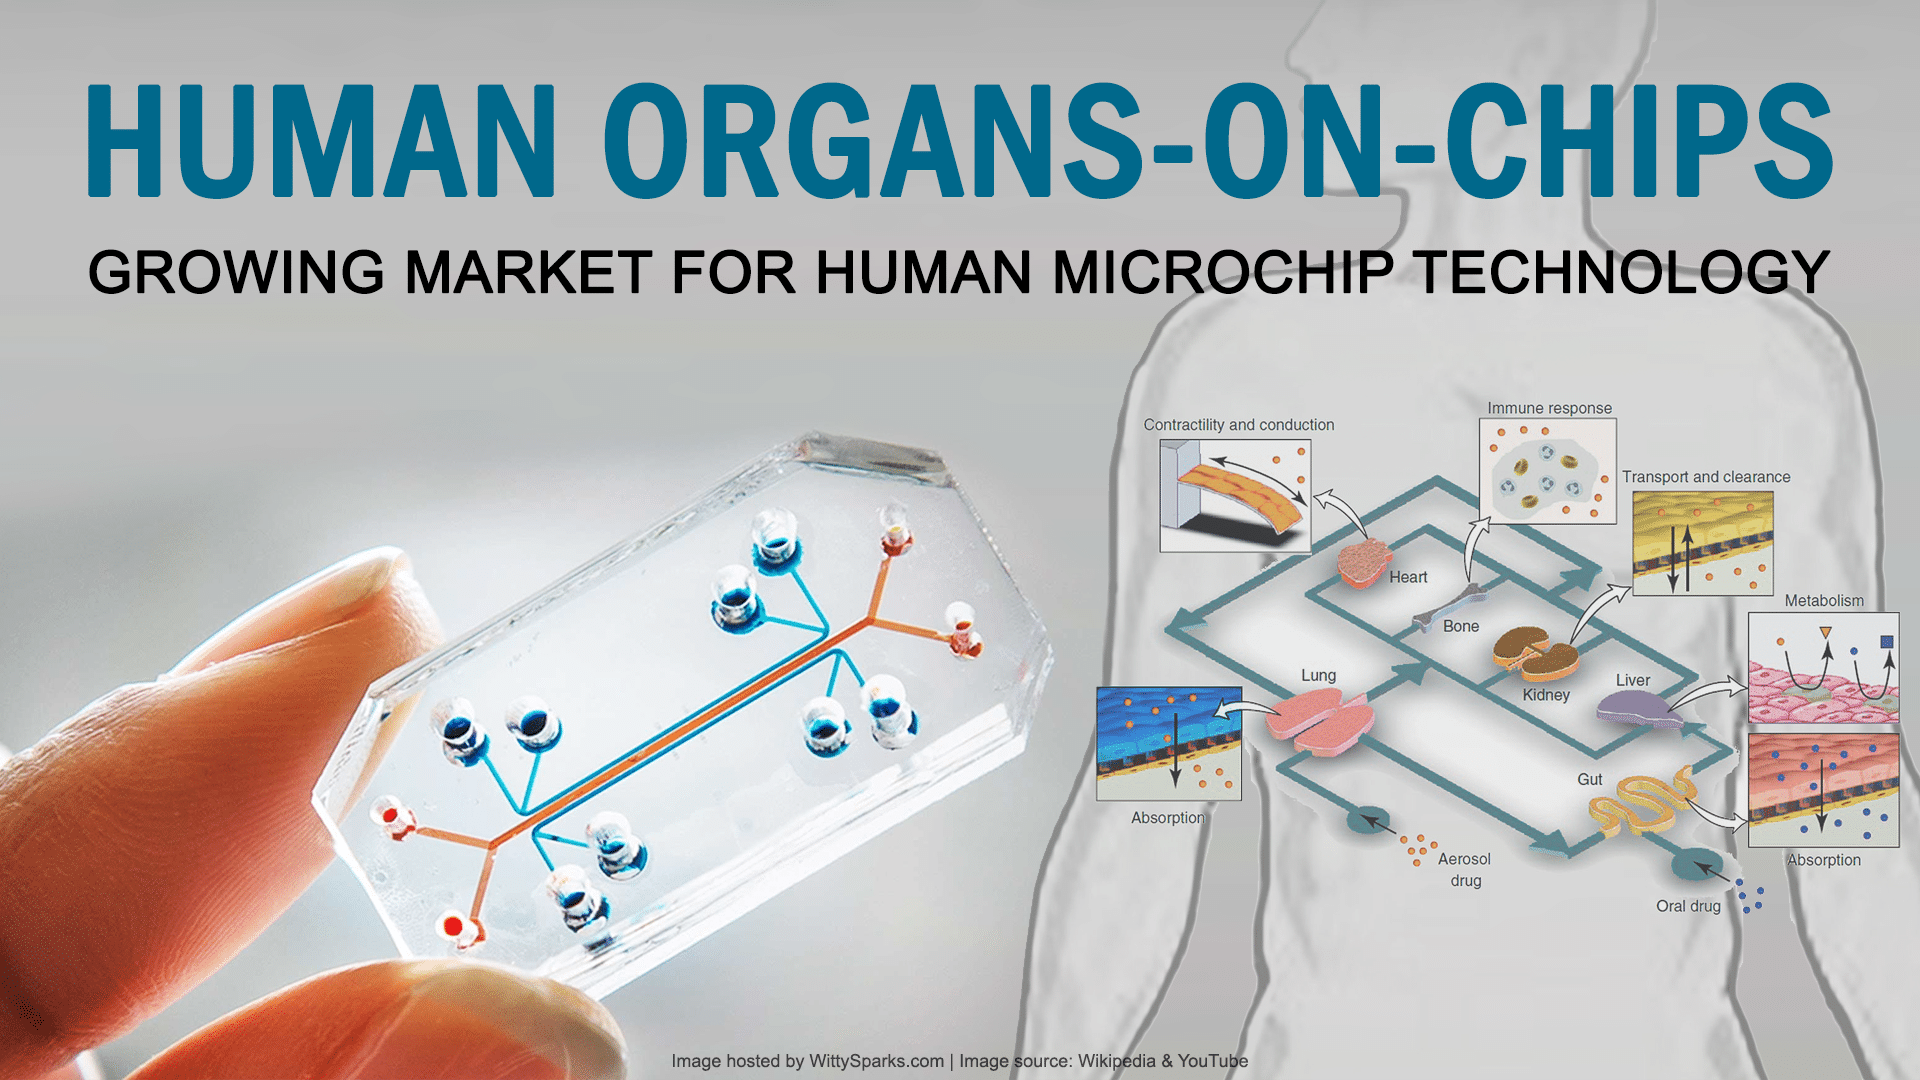 Organ Microchip Applications, Challenges and Future